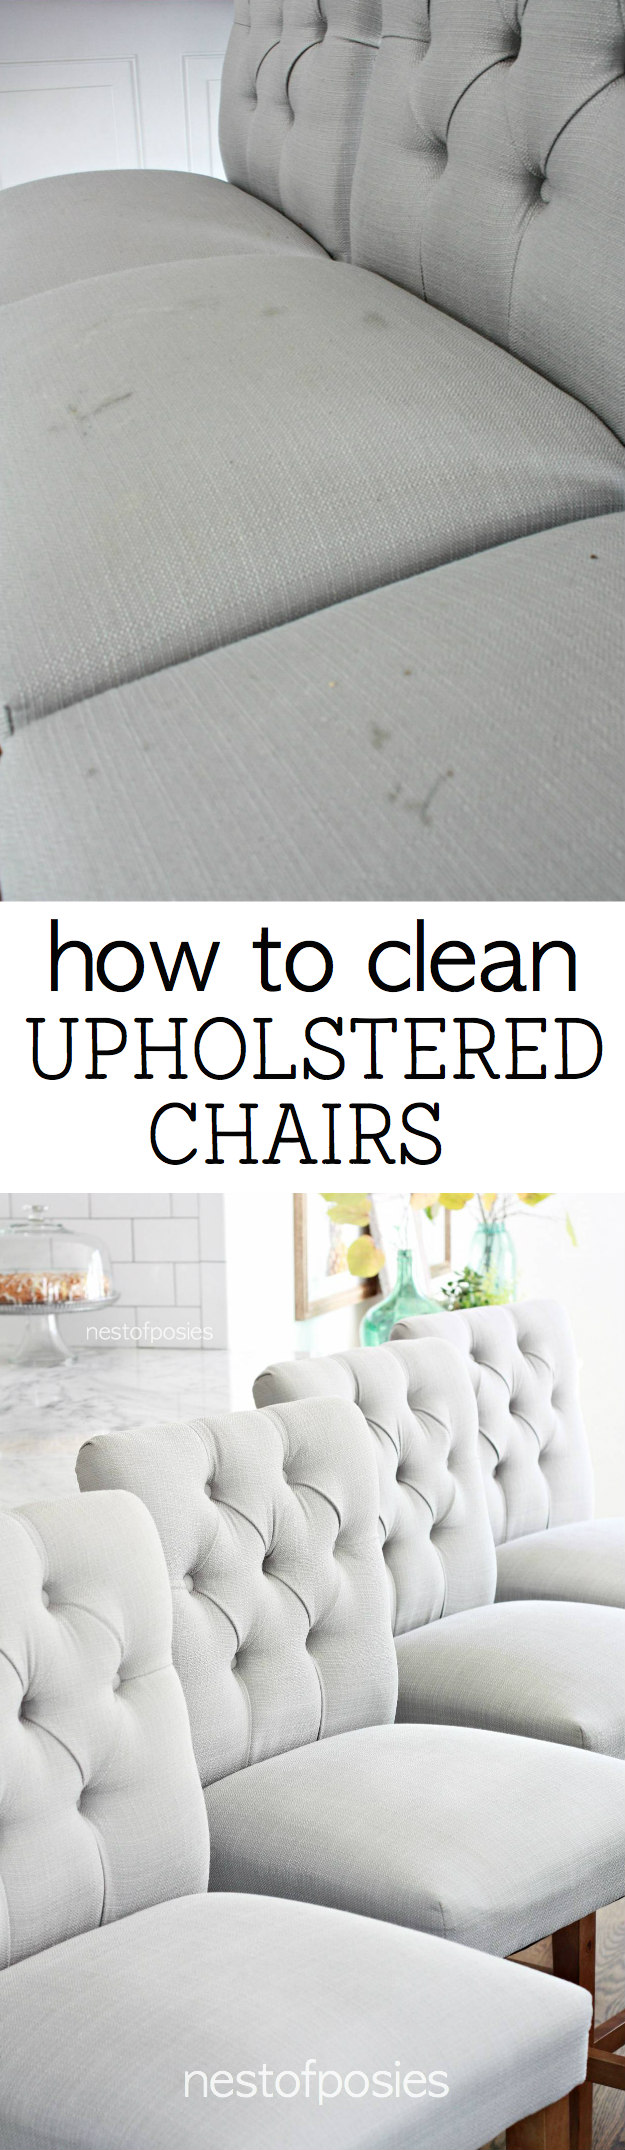 Wonderful How To Clean Upholstered Chairs. My Cleaning Tricks Even With 3 Young Kids  Eating On